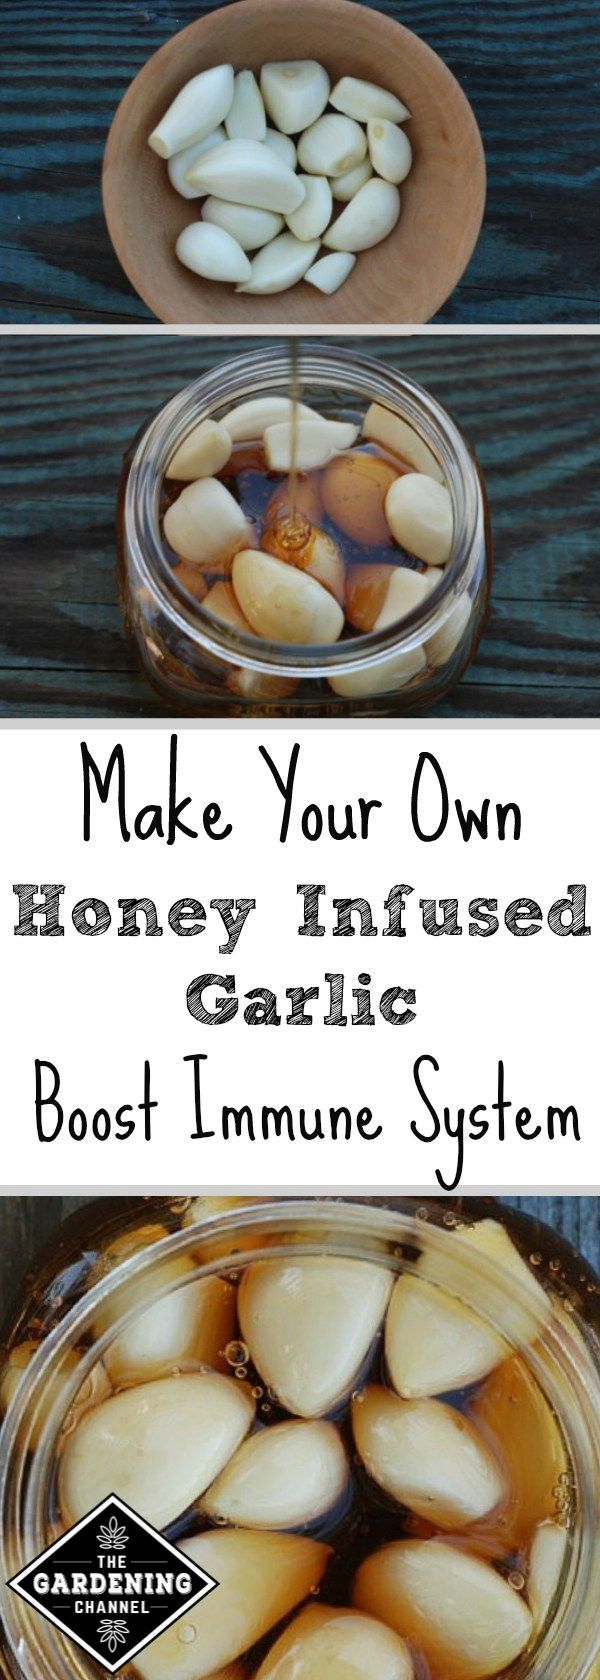 Looking for a natural immune booster during cold and flu season? Try making your own garlic infused with honey with this step by step guide.